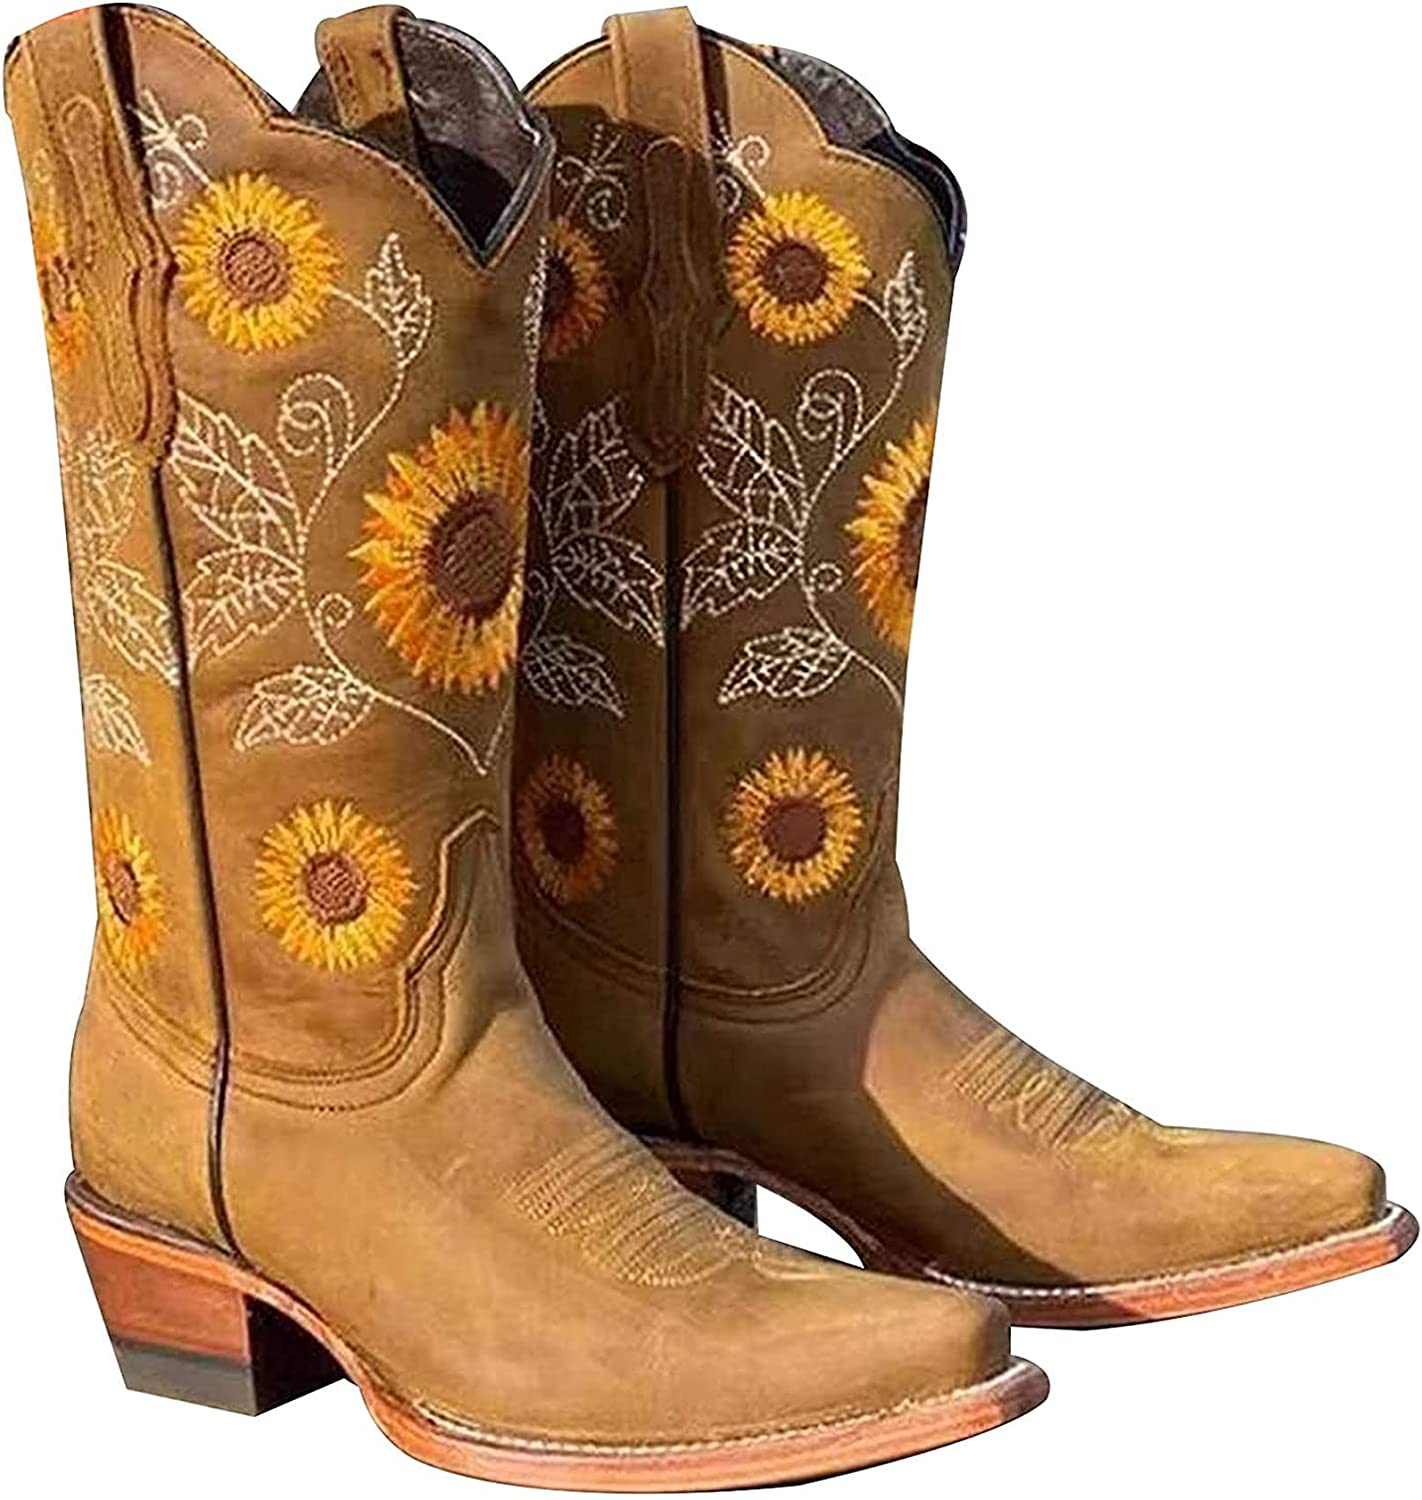 Western Boots for Women Sunflowers Embroidery Cowgirl Boots Mid Calf Chunky Heel Retro Square Toe Cowboy Boots